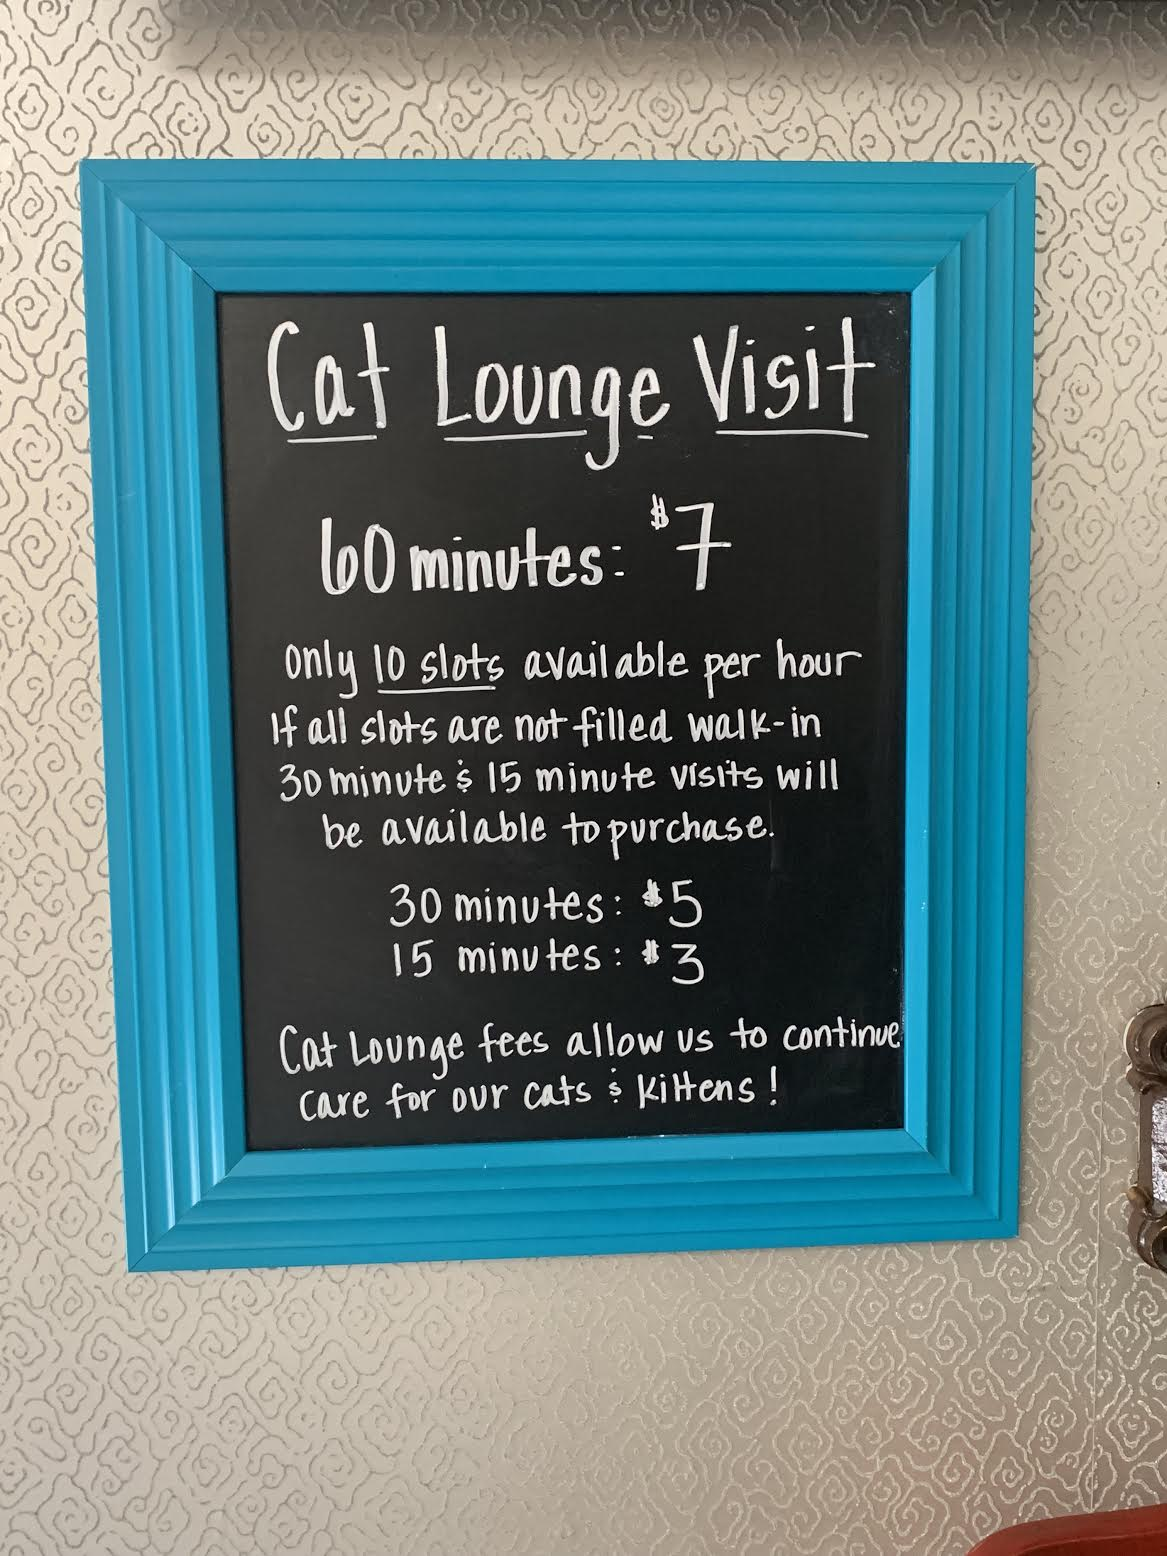 Cattfeinated Cat Cafe, Greensburg's cat cafe is now open! - Downtown  Greensburg Project